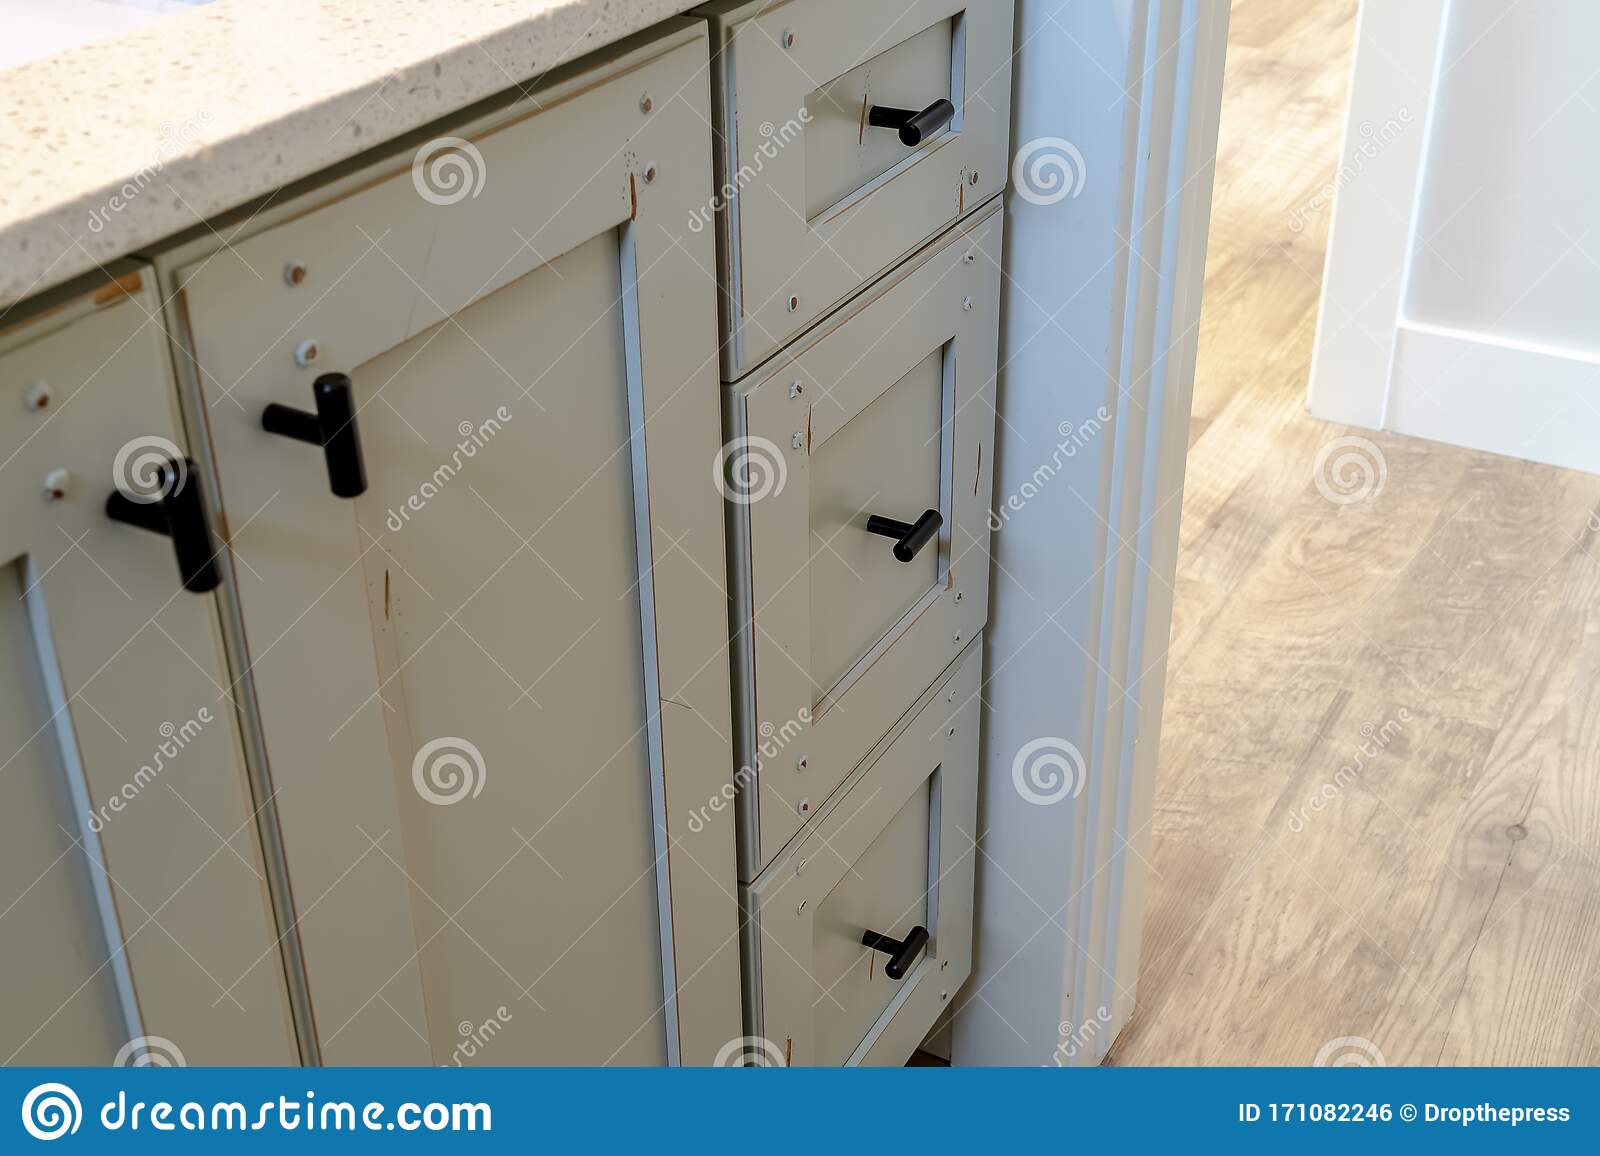 Vanity Cabinet With Black Handles And White Countertop Inside Bathroom Stock Photo Image Of Real Wooden 171082246